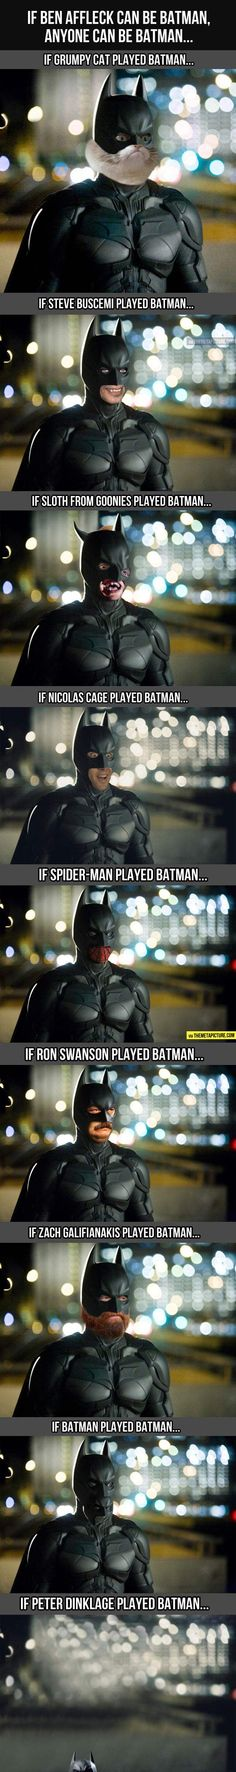 Anyone can play Batman now...hahahaha Ohhhh MAN! #Batman #BatFleck #HAHAHA